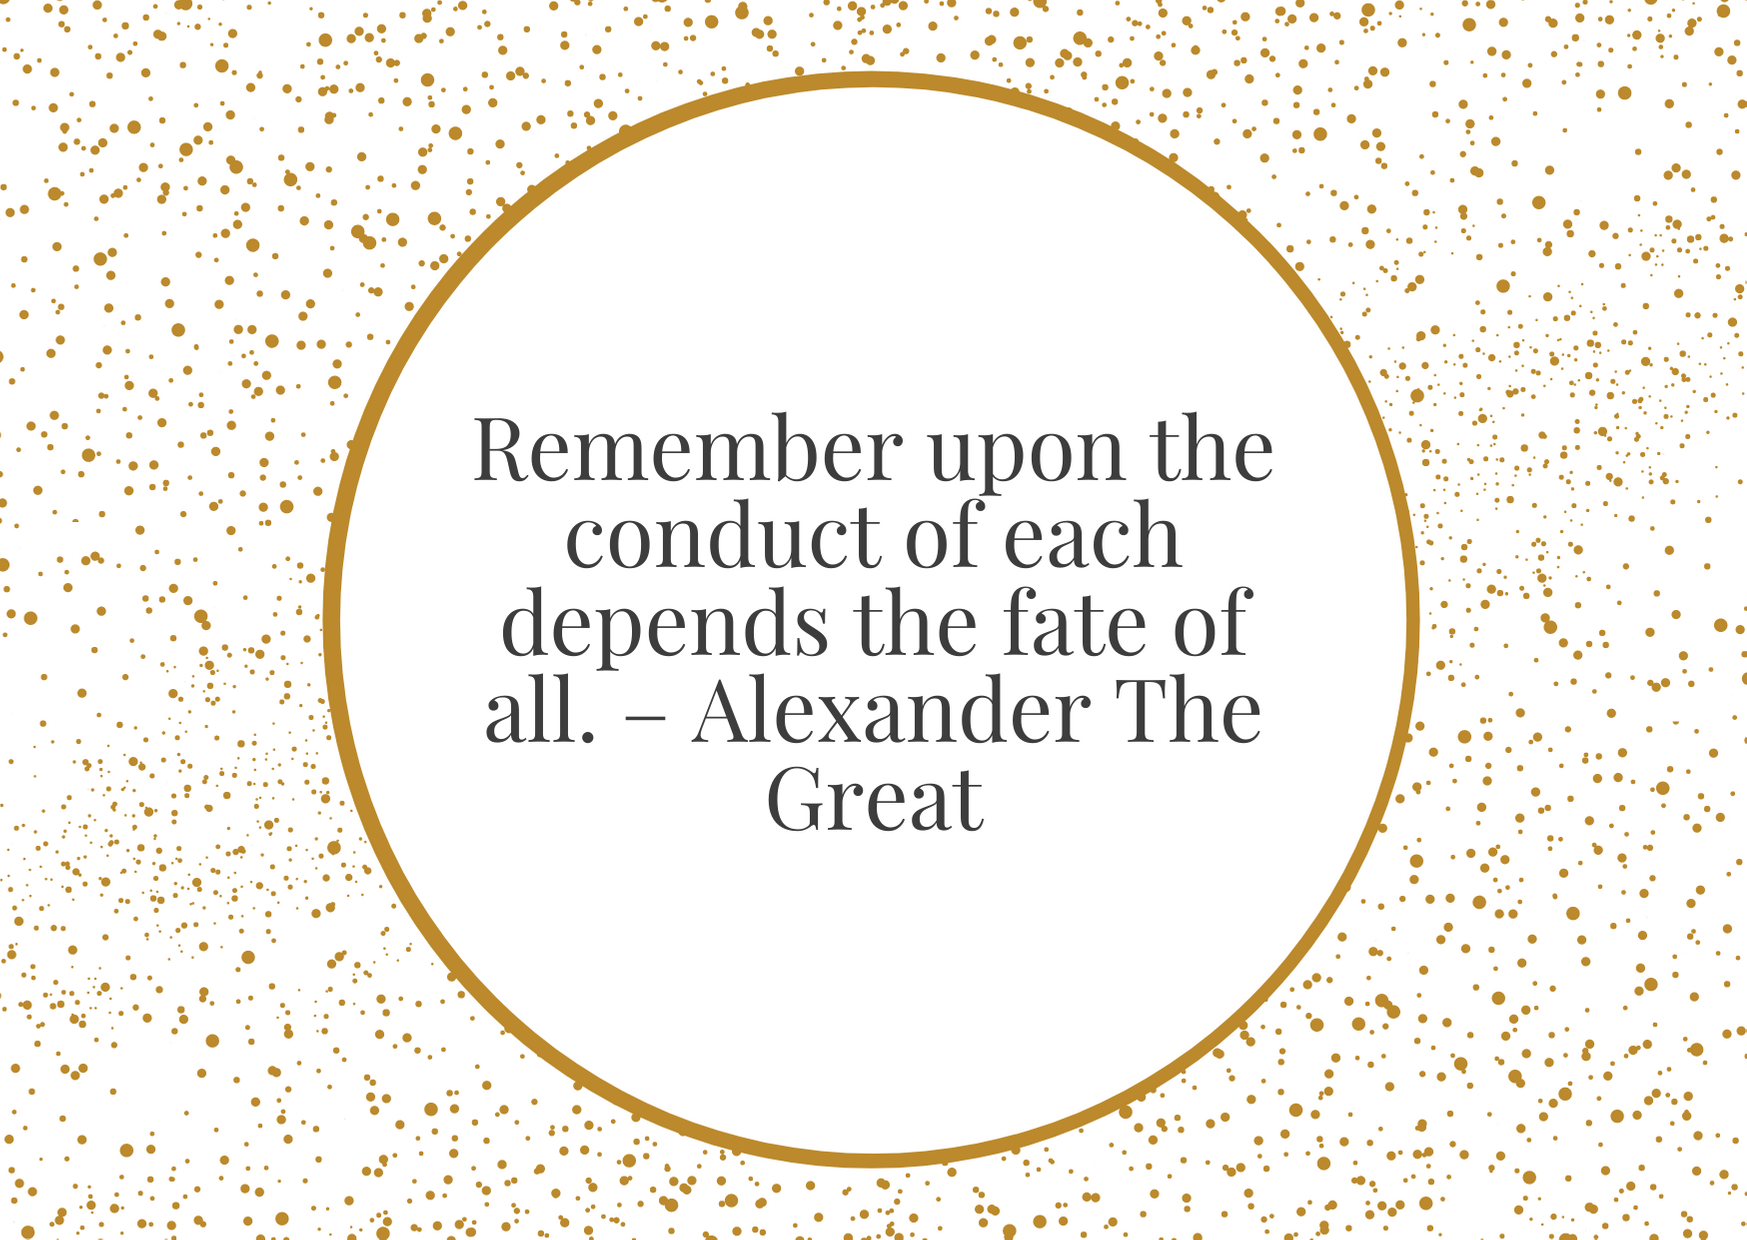 """""""Remember upon the conduct of each depend the fate of all."""" – Alexander The Great"""